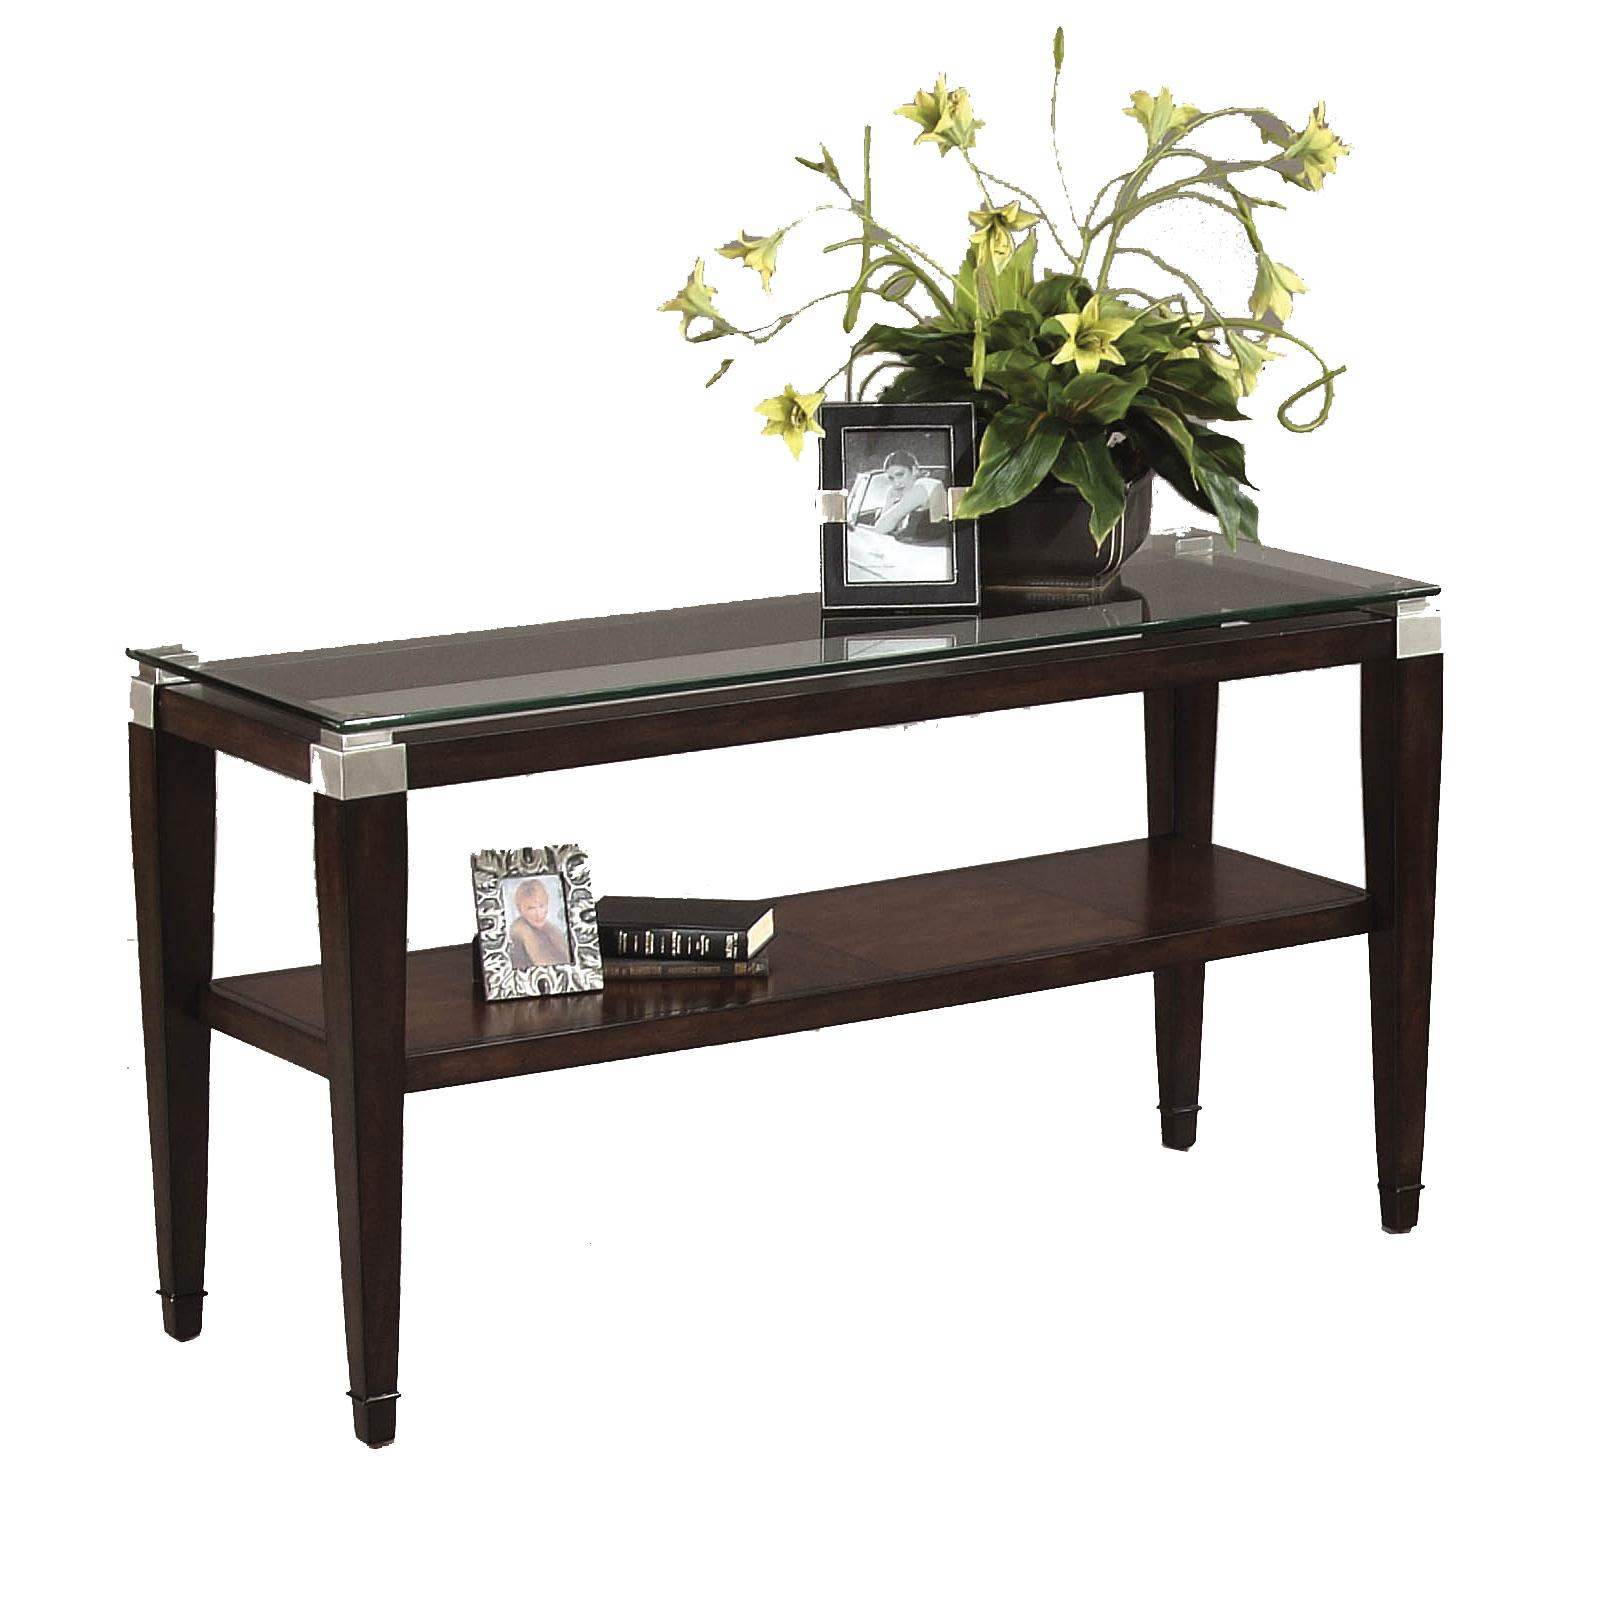 Dunhill Console Table by Bassett Mirror at Lapeer Furniture & Mattress Center